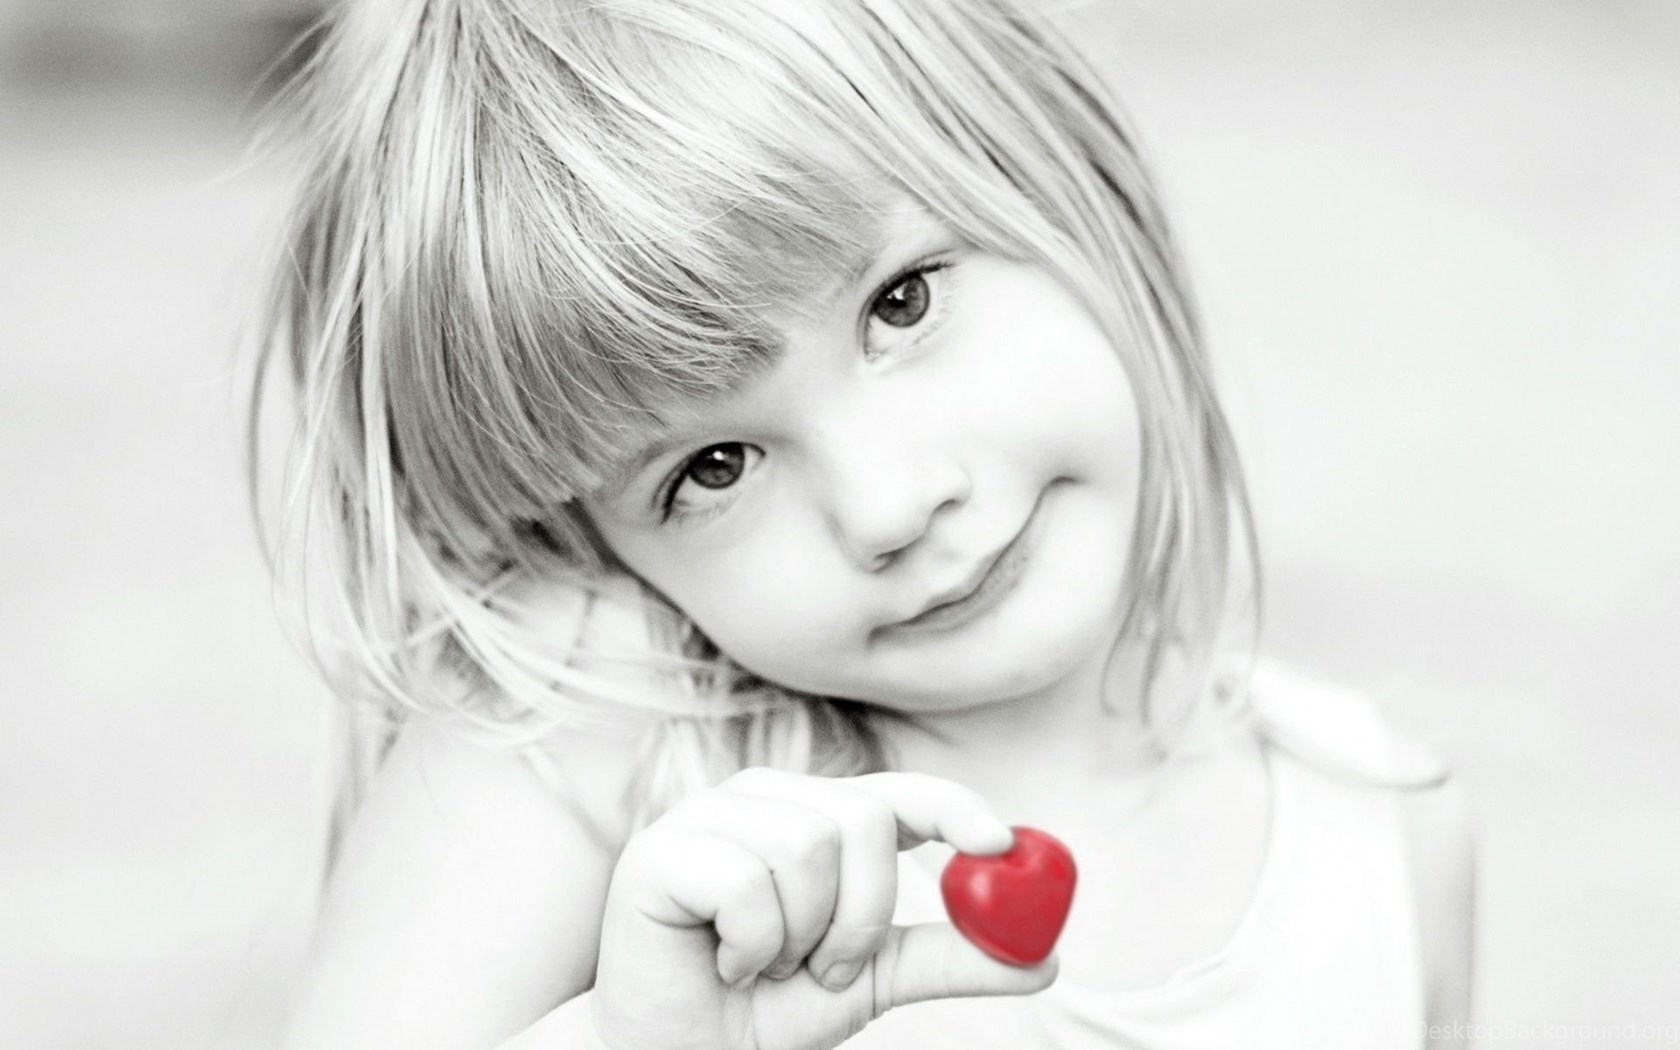 Cute Little Girl Black And White Wallpapers Dreamlovewallpapers